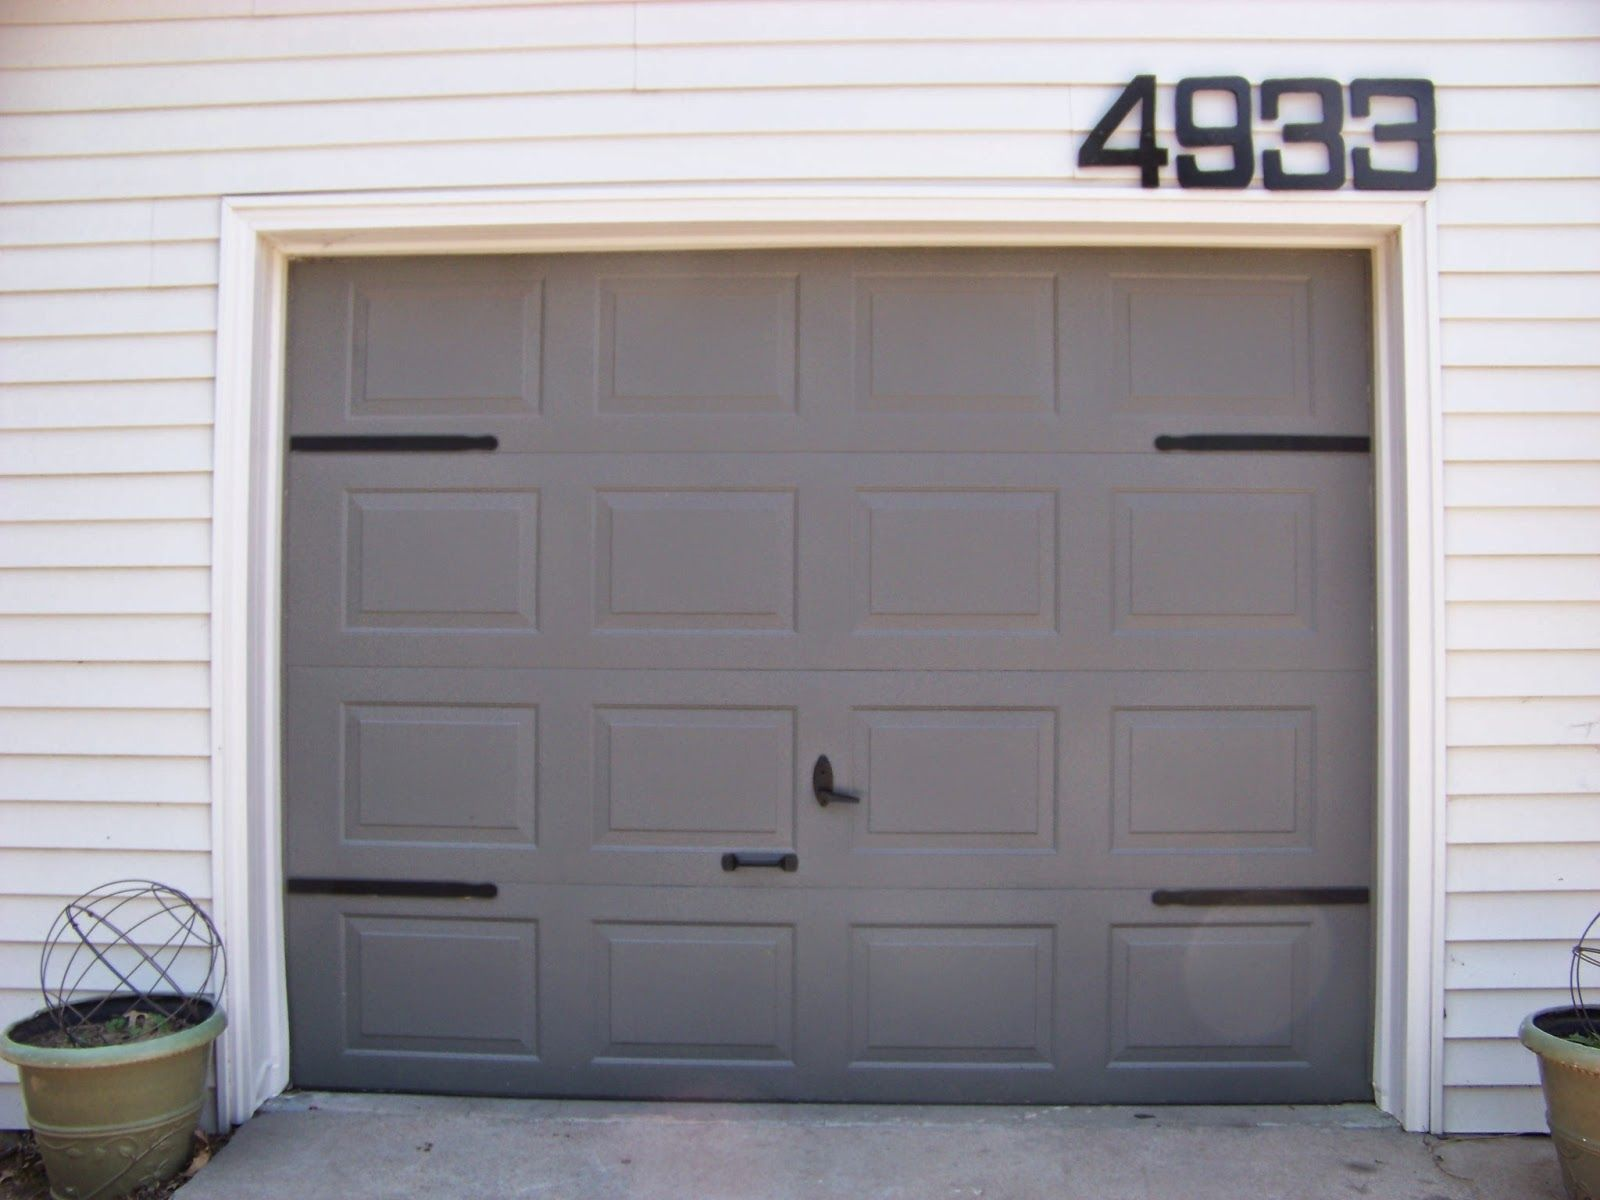 Carriage garage doors without windows  Wood Garage Doors No Windows  voteno  Pinterest